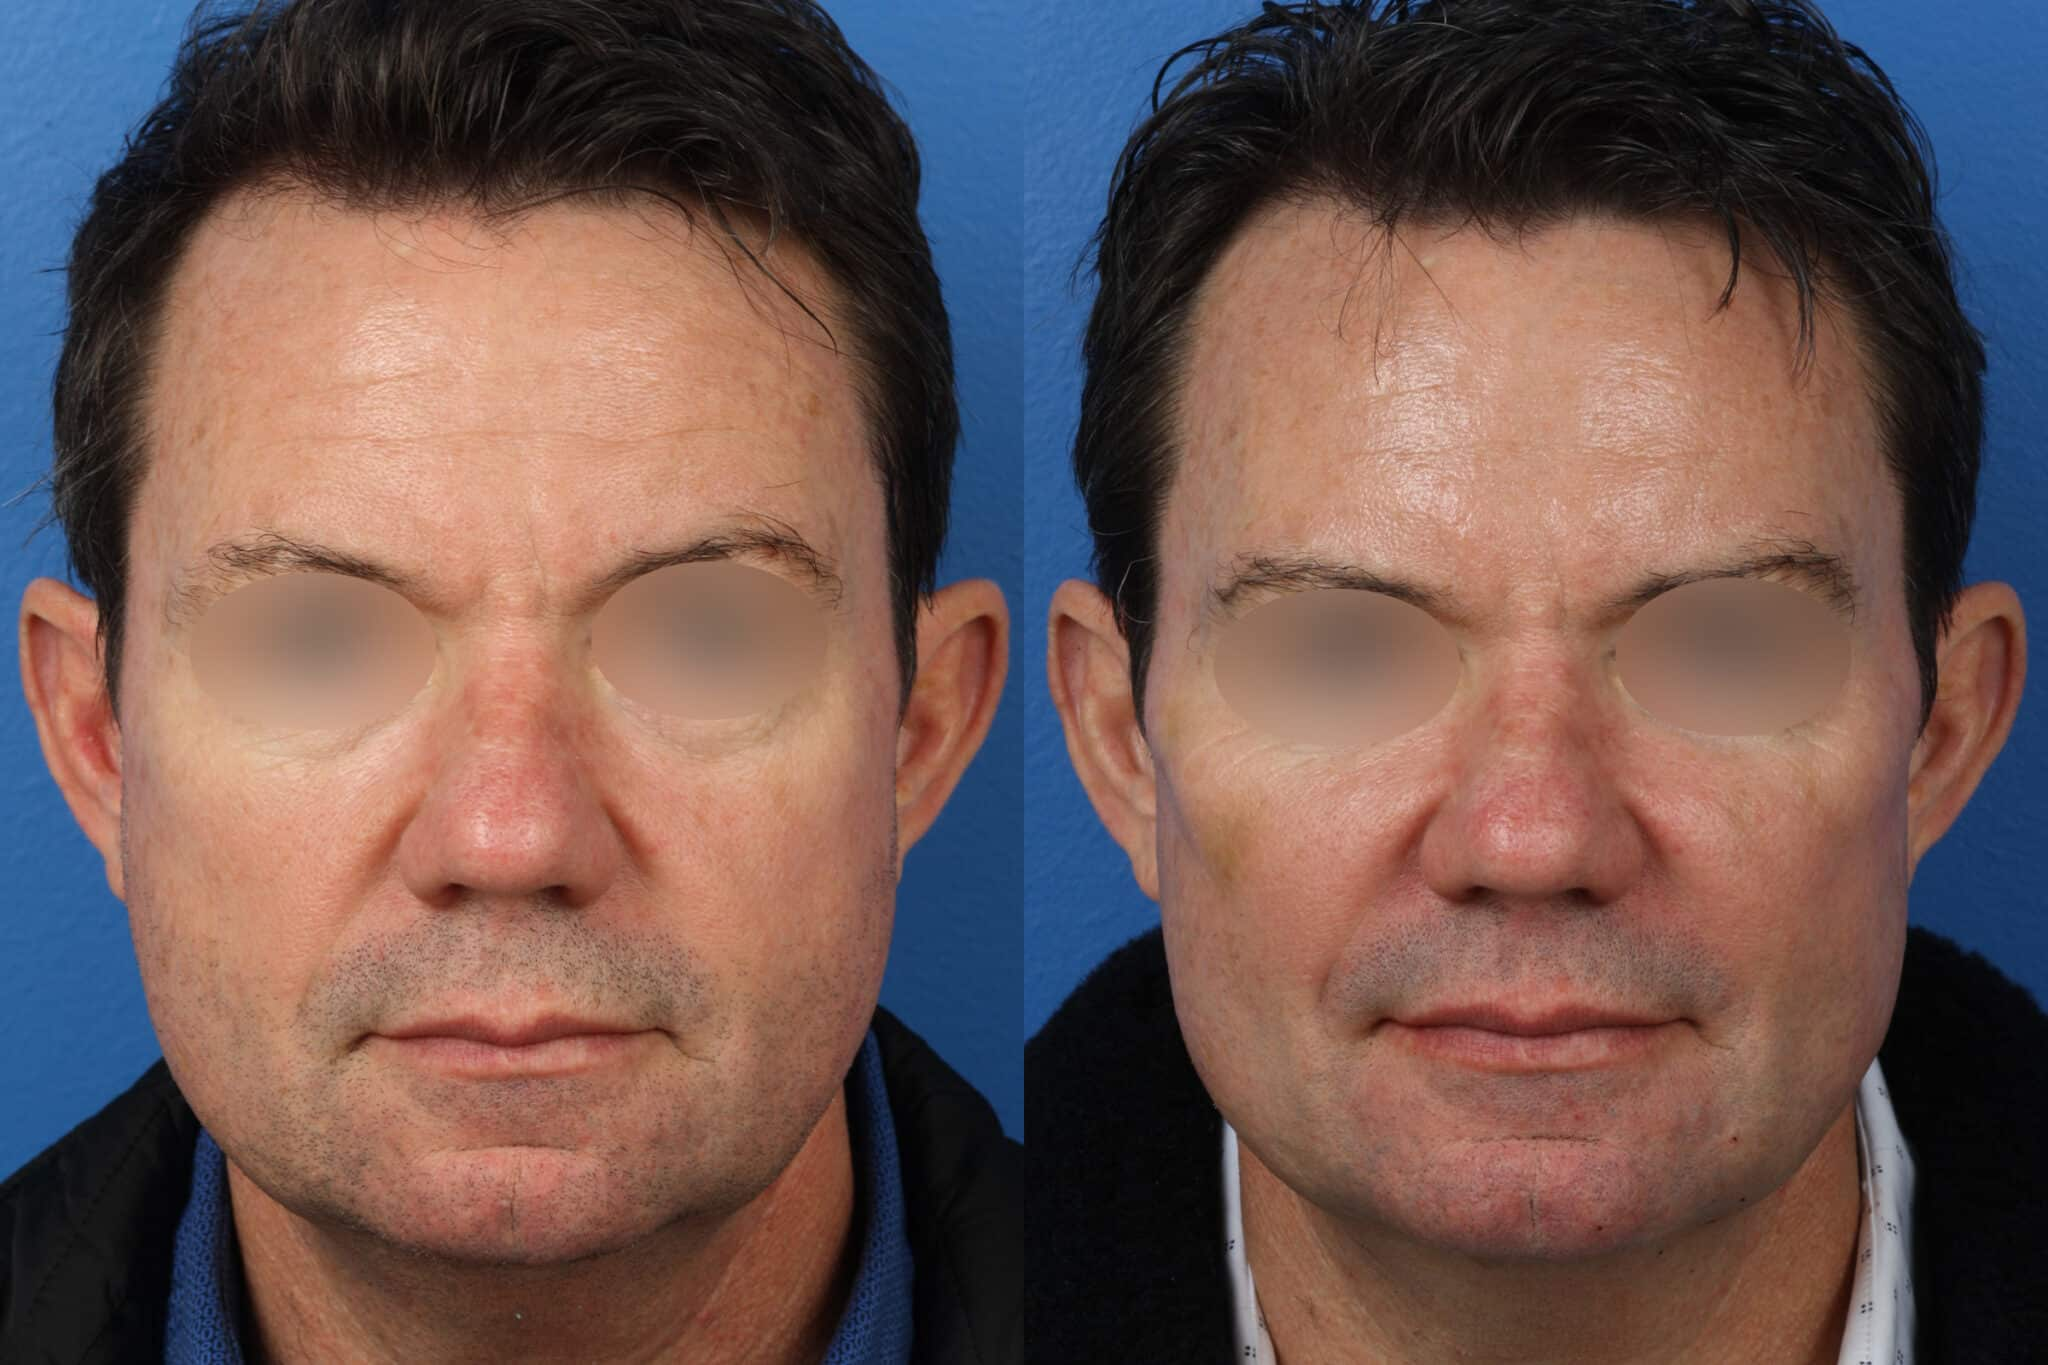 Brow Lift to Rejuvenate the Upper Face by Dr. Miller